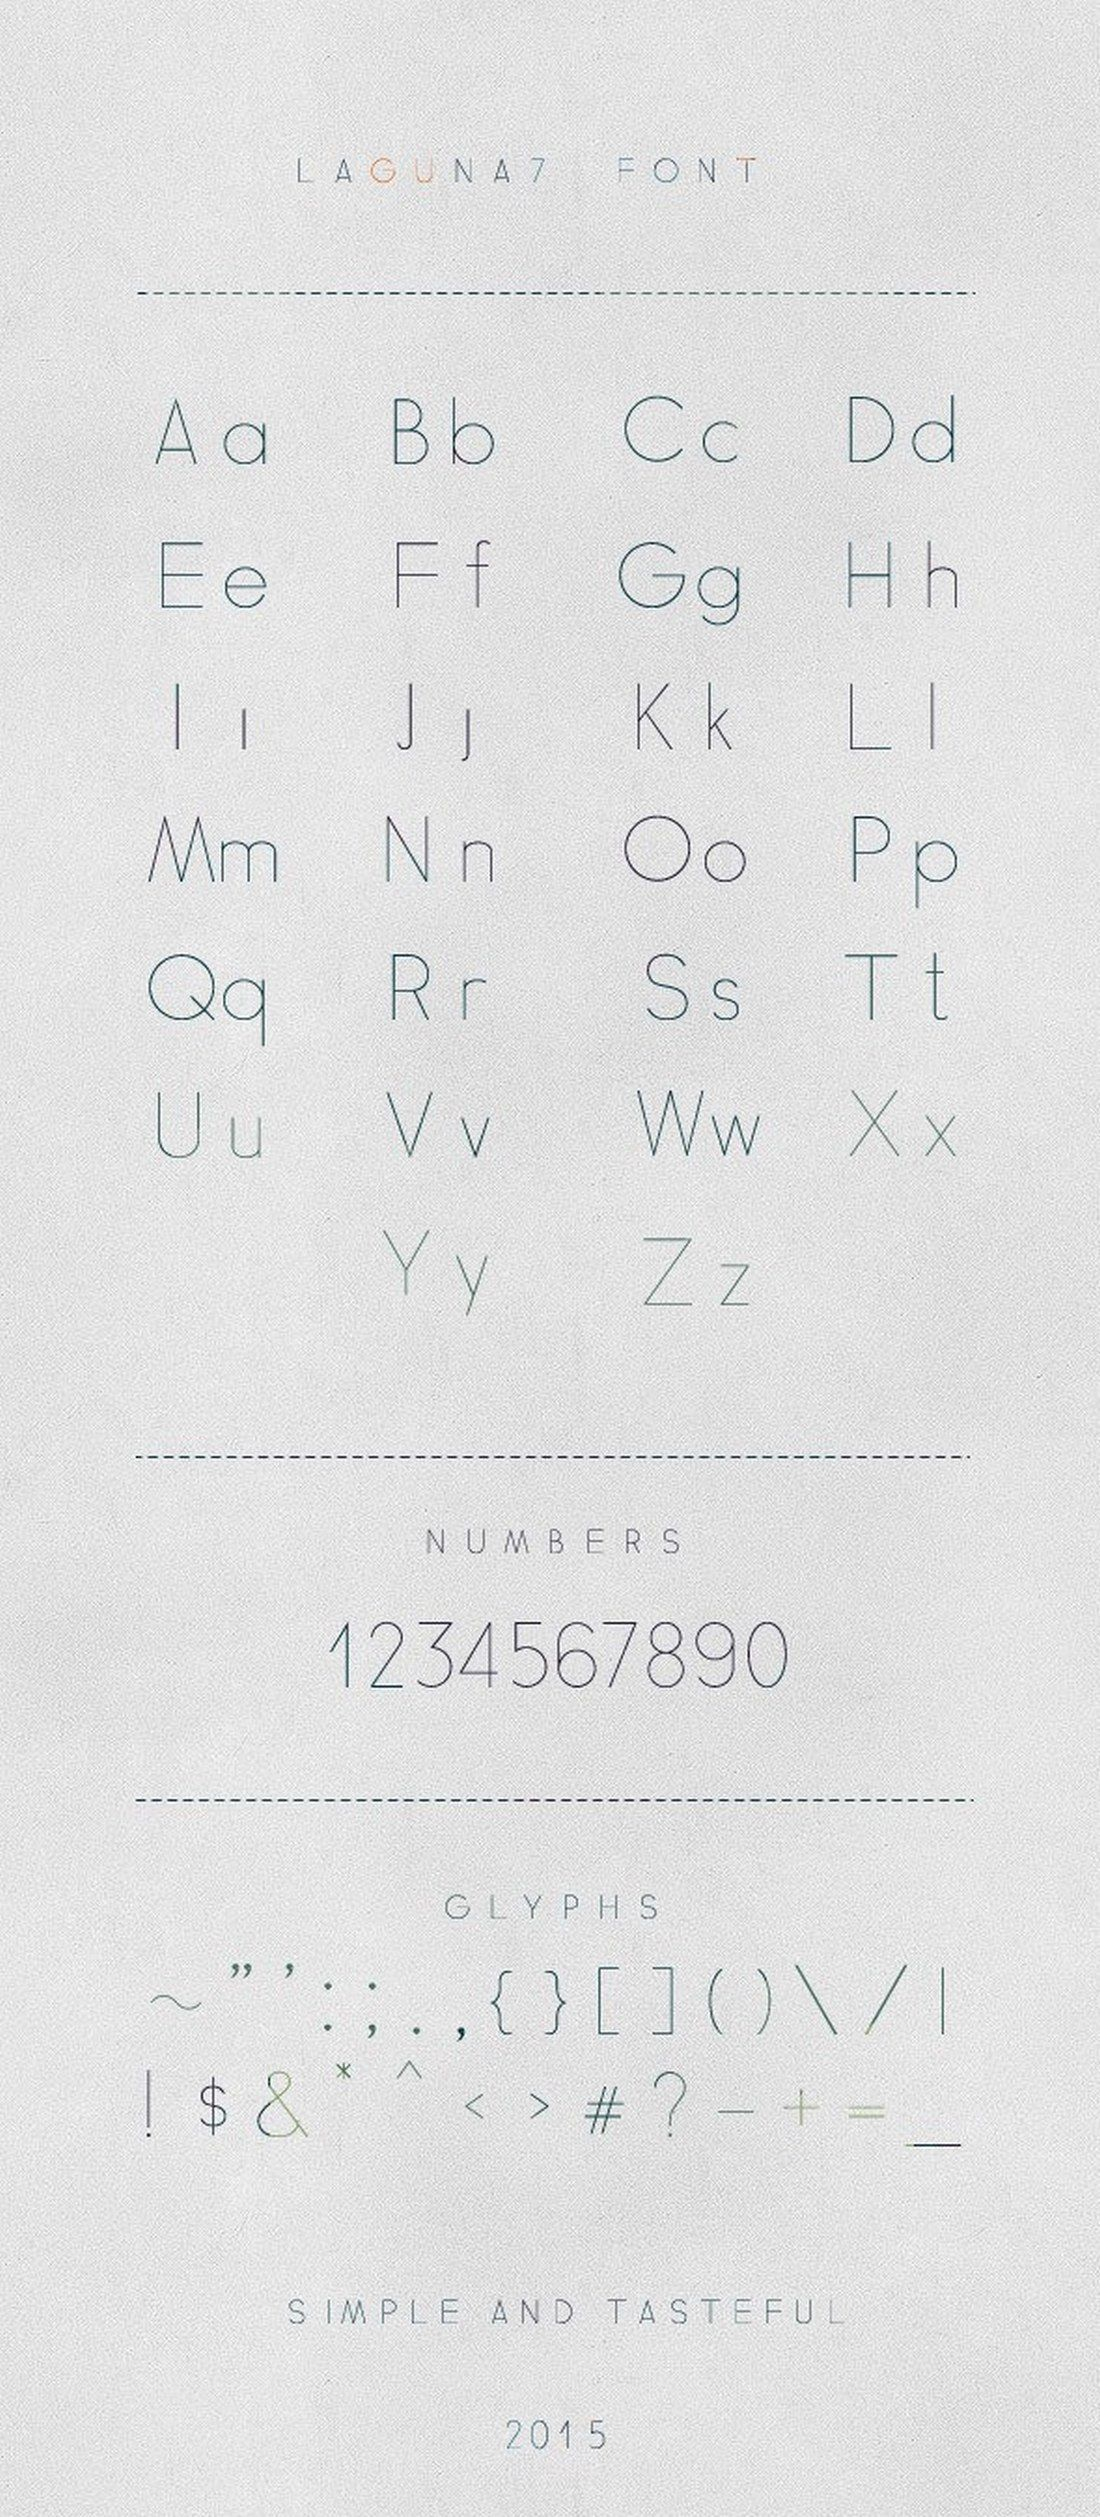 30+ Best Number Fonts for Displaying Numbers Number